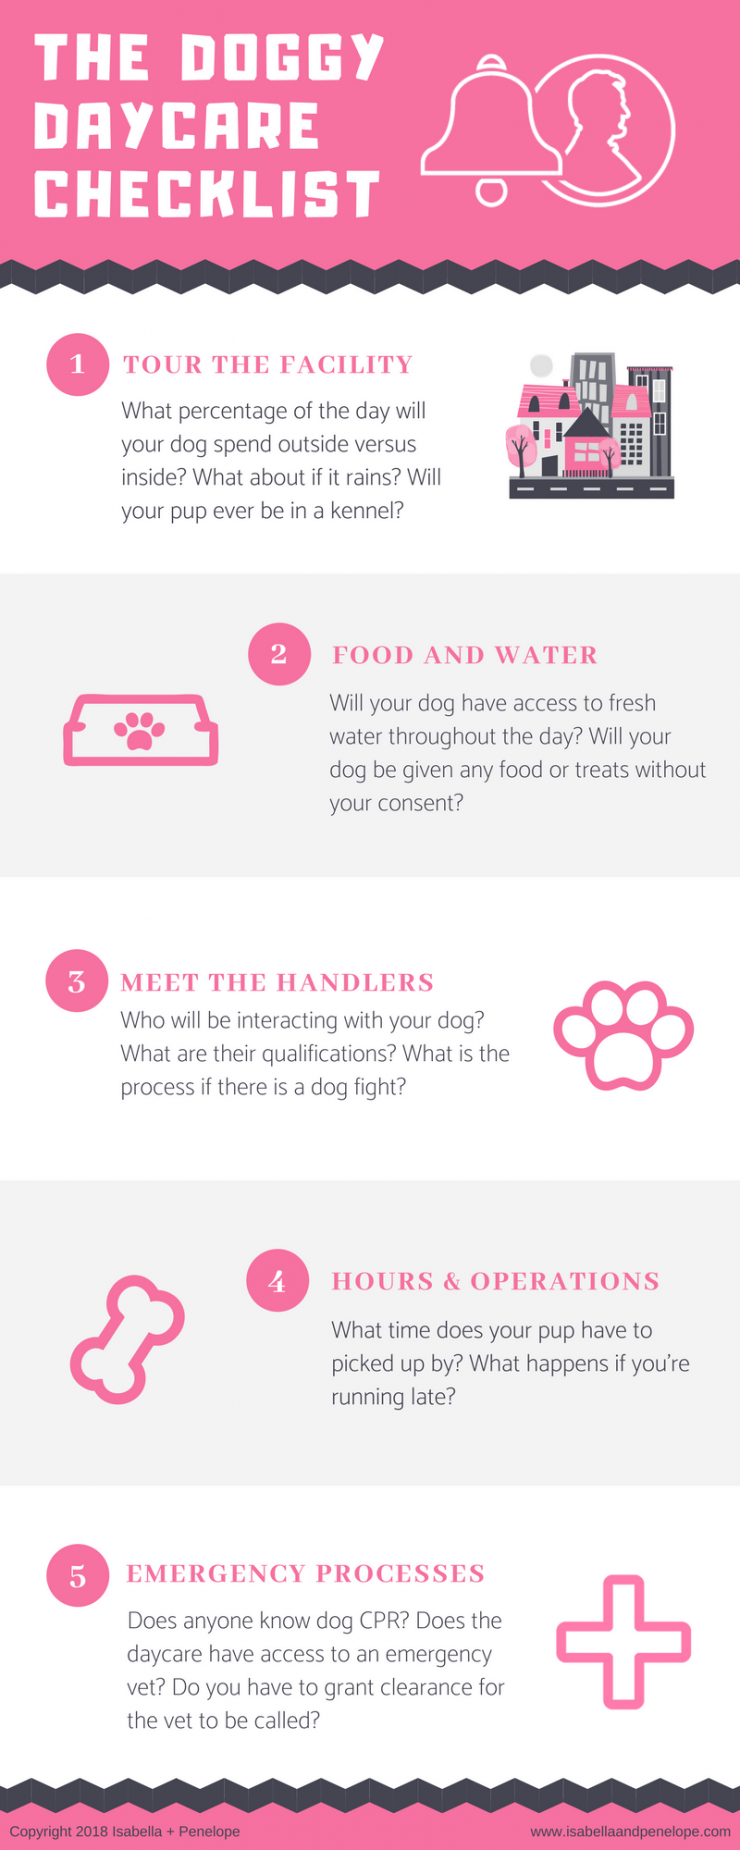 doggy-daycare-checklist-infographic-isabella-and-penelope.png